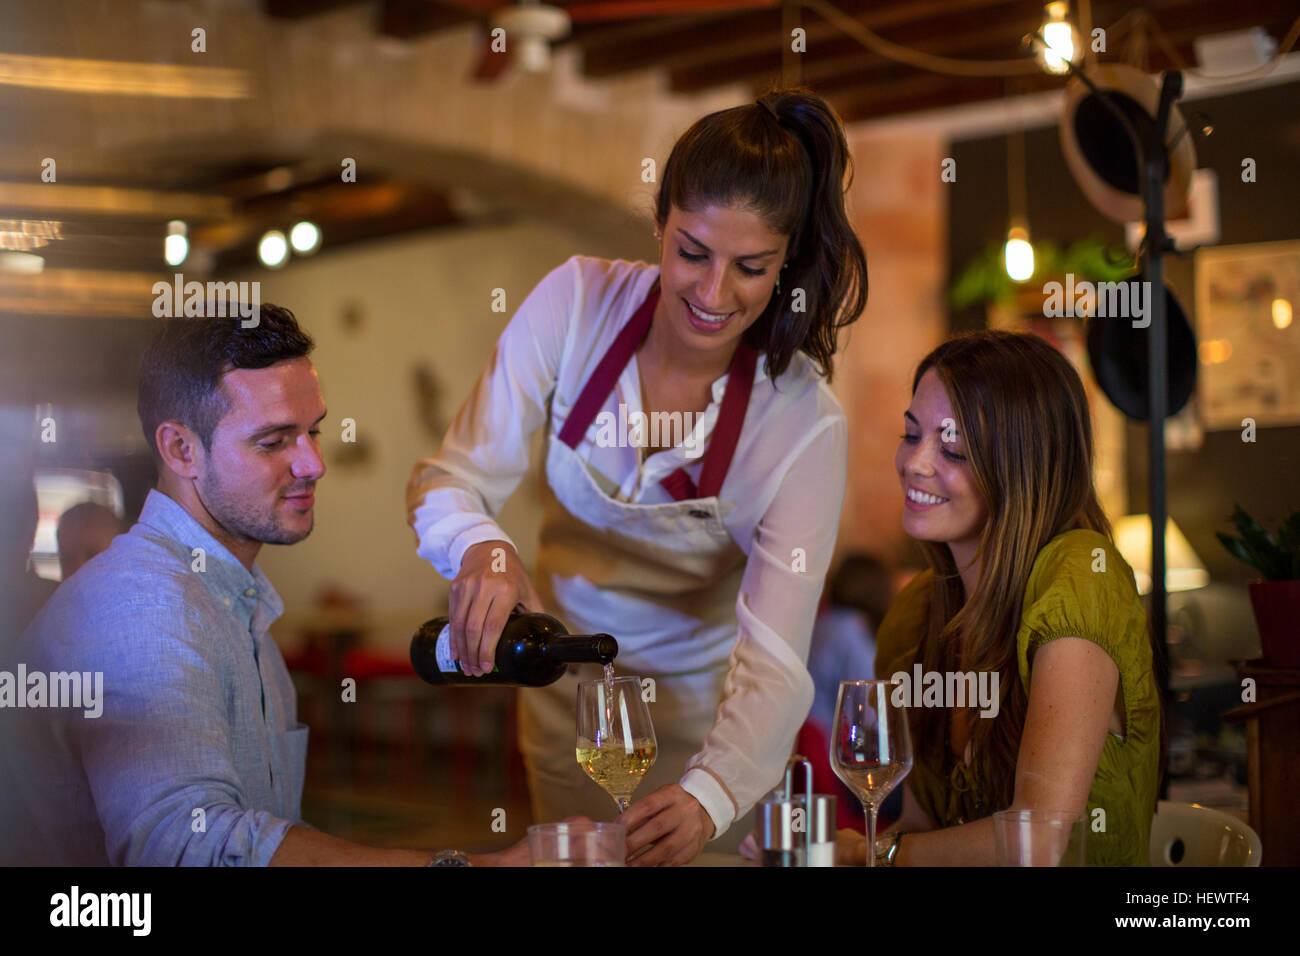 Waitress serving wine to customers in restaurant - Stock Image